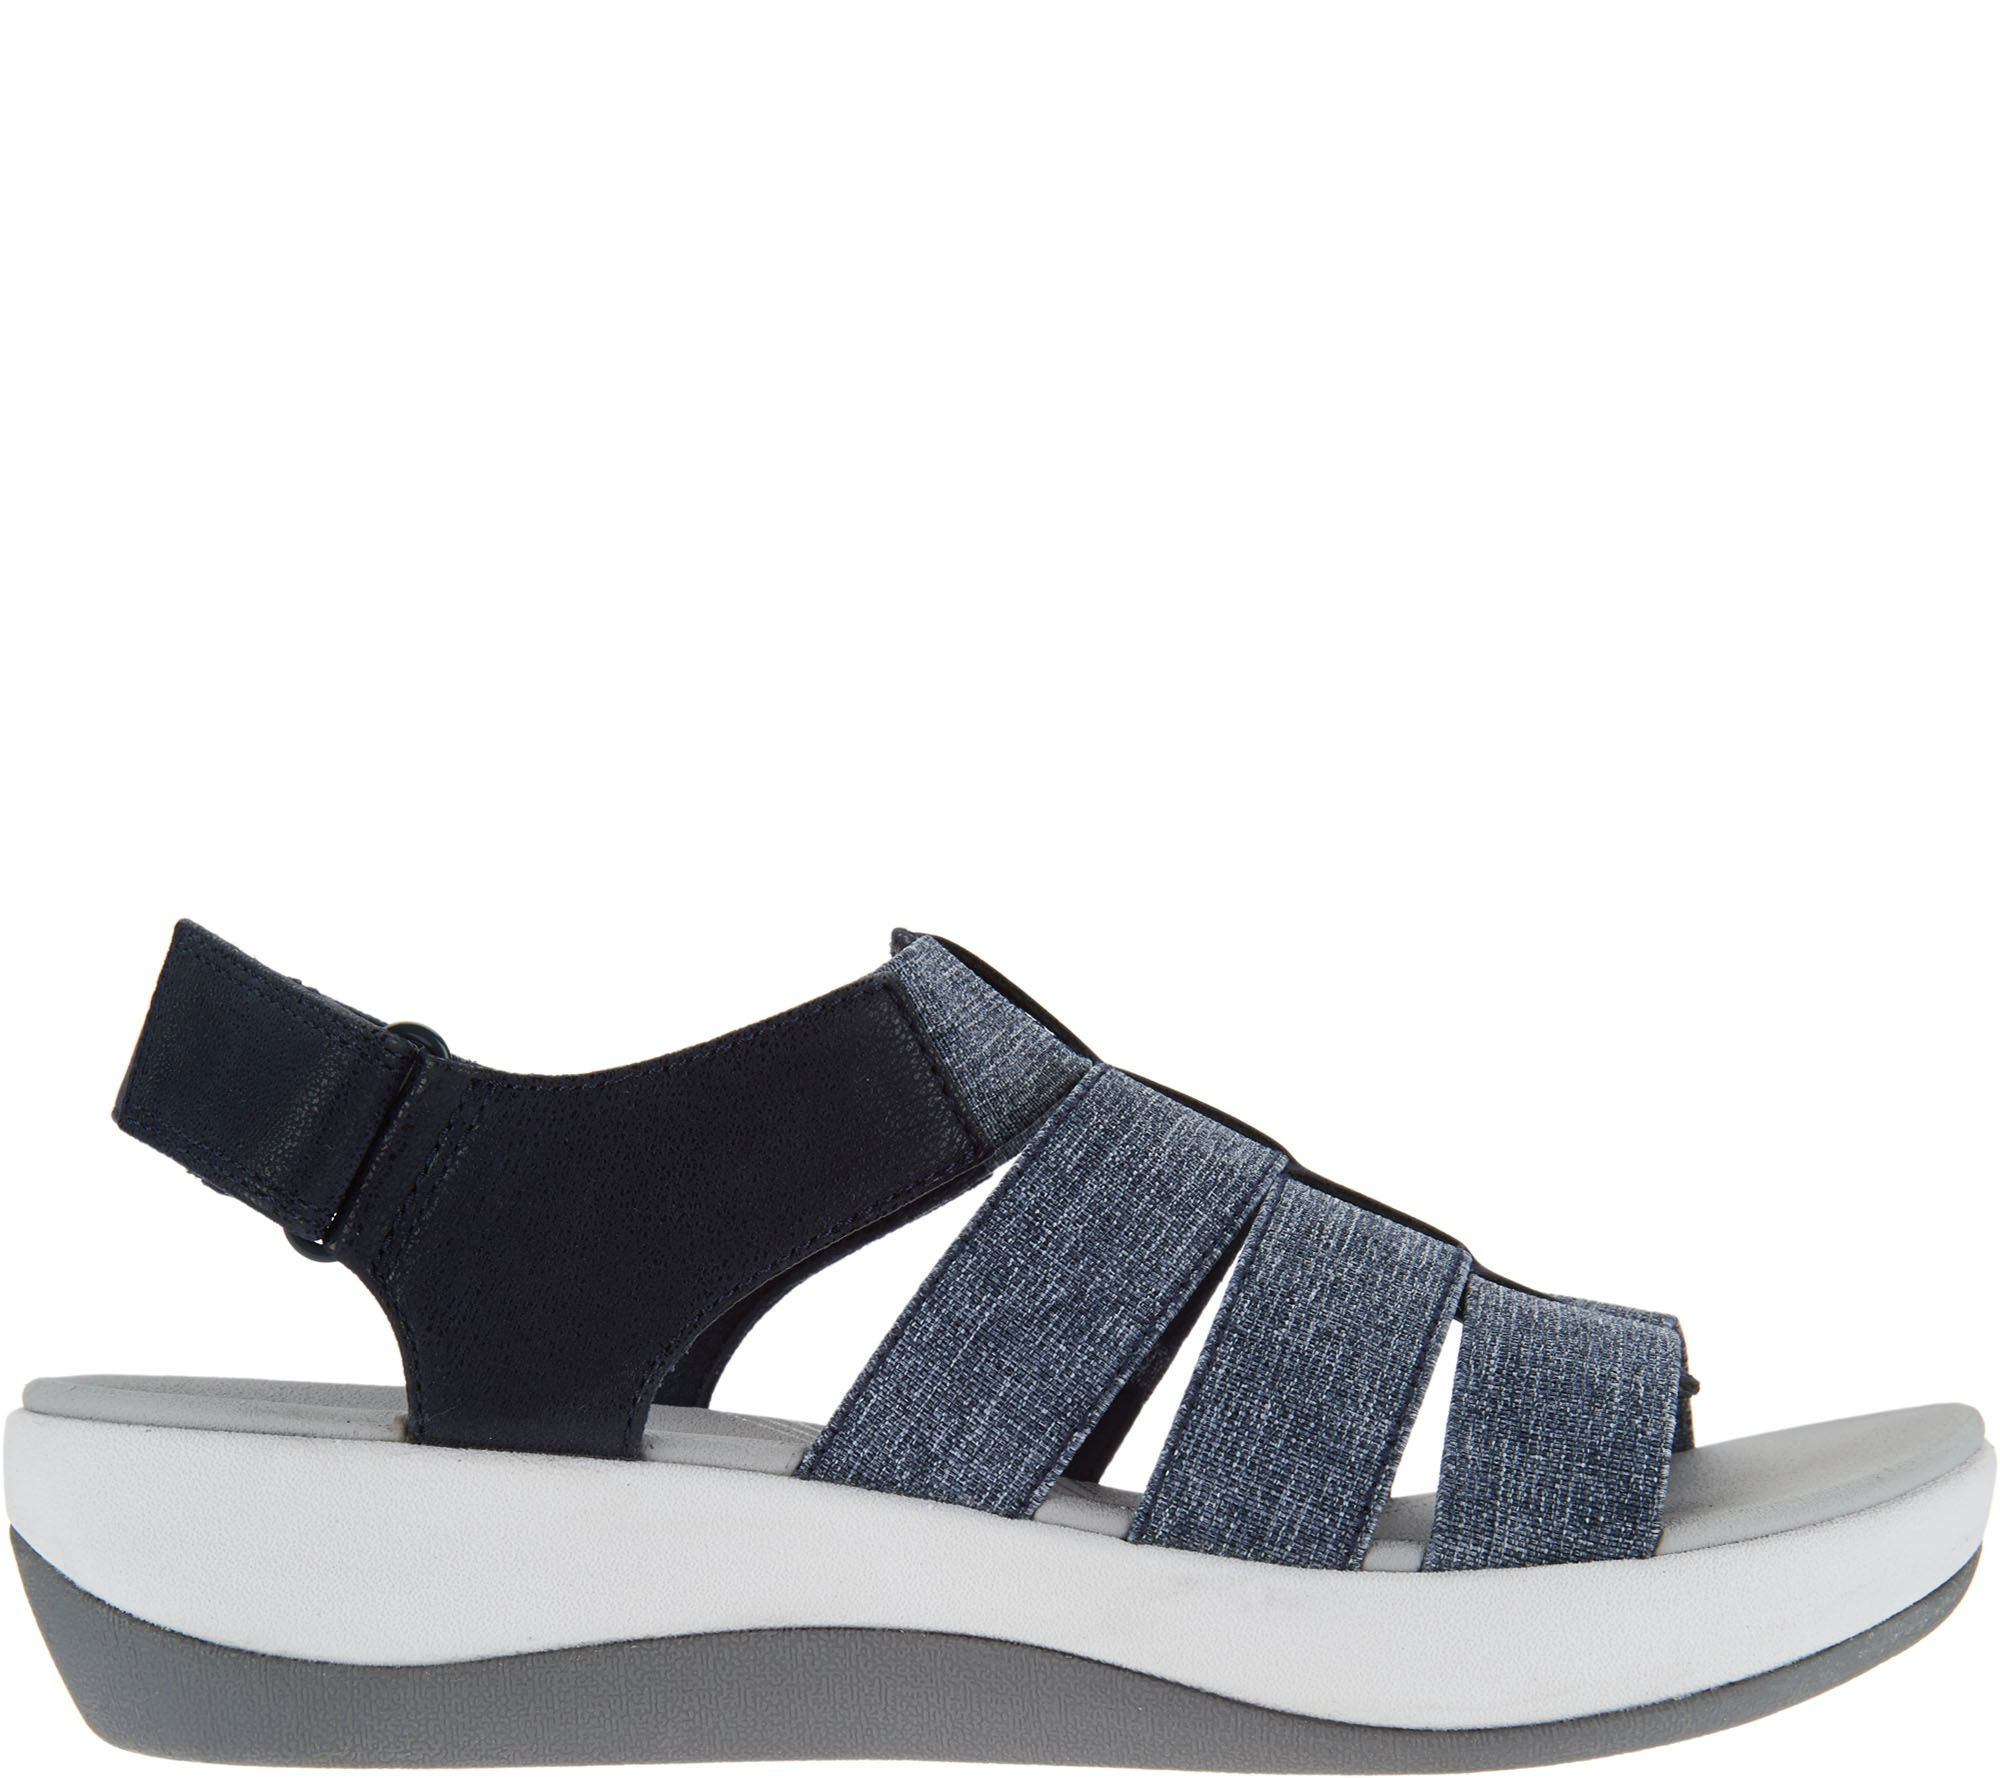 43e42458a66 CLOUDSTEPPERS by Clarks Sport Sandals - Arla Shaylie - Page 1 — QVC.com